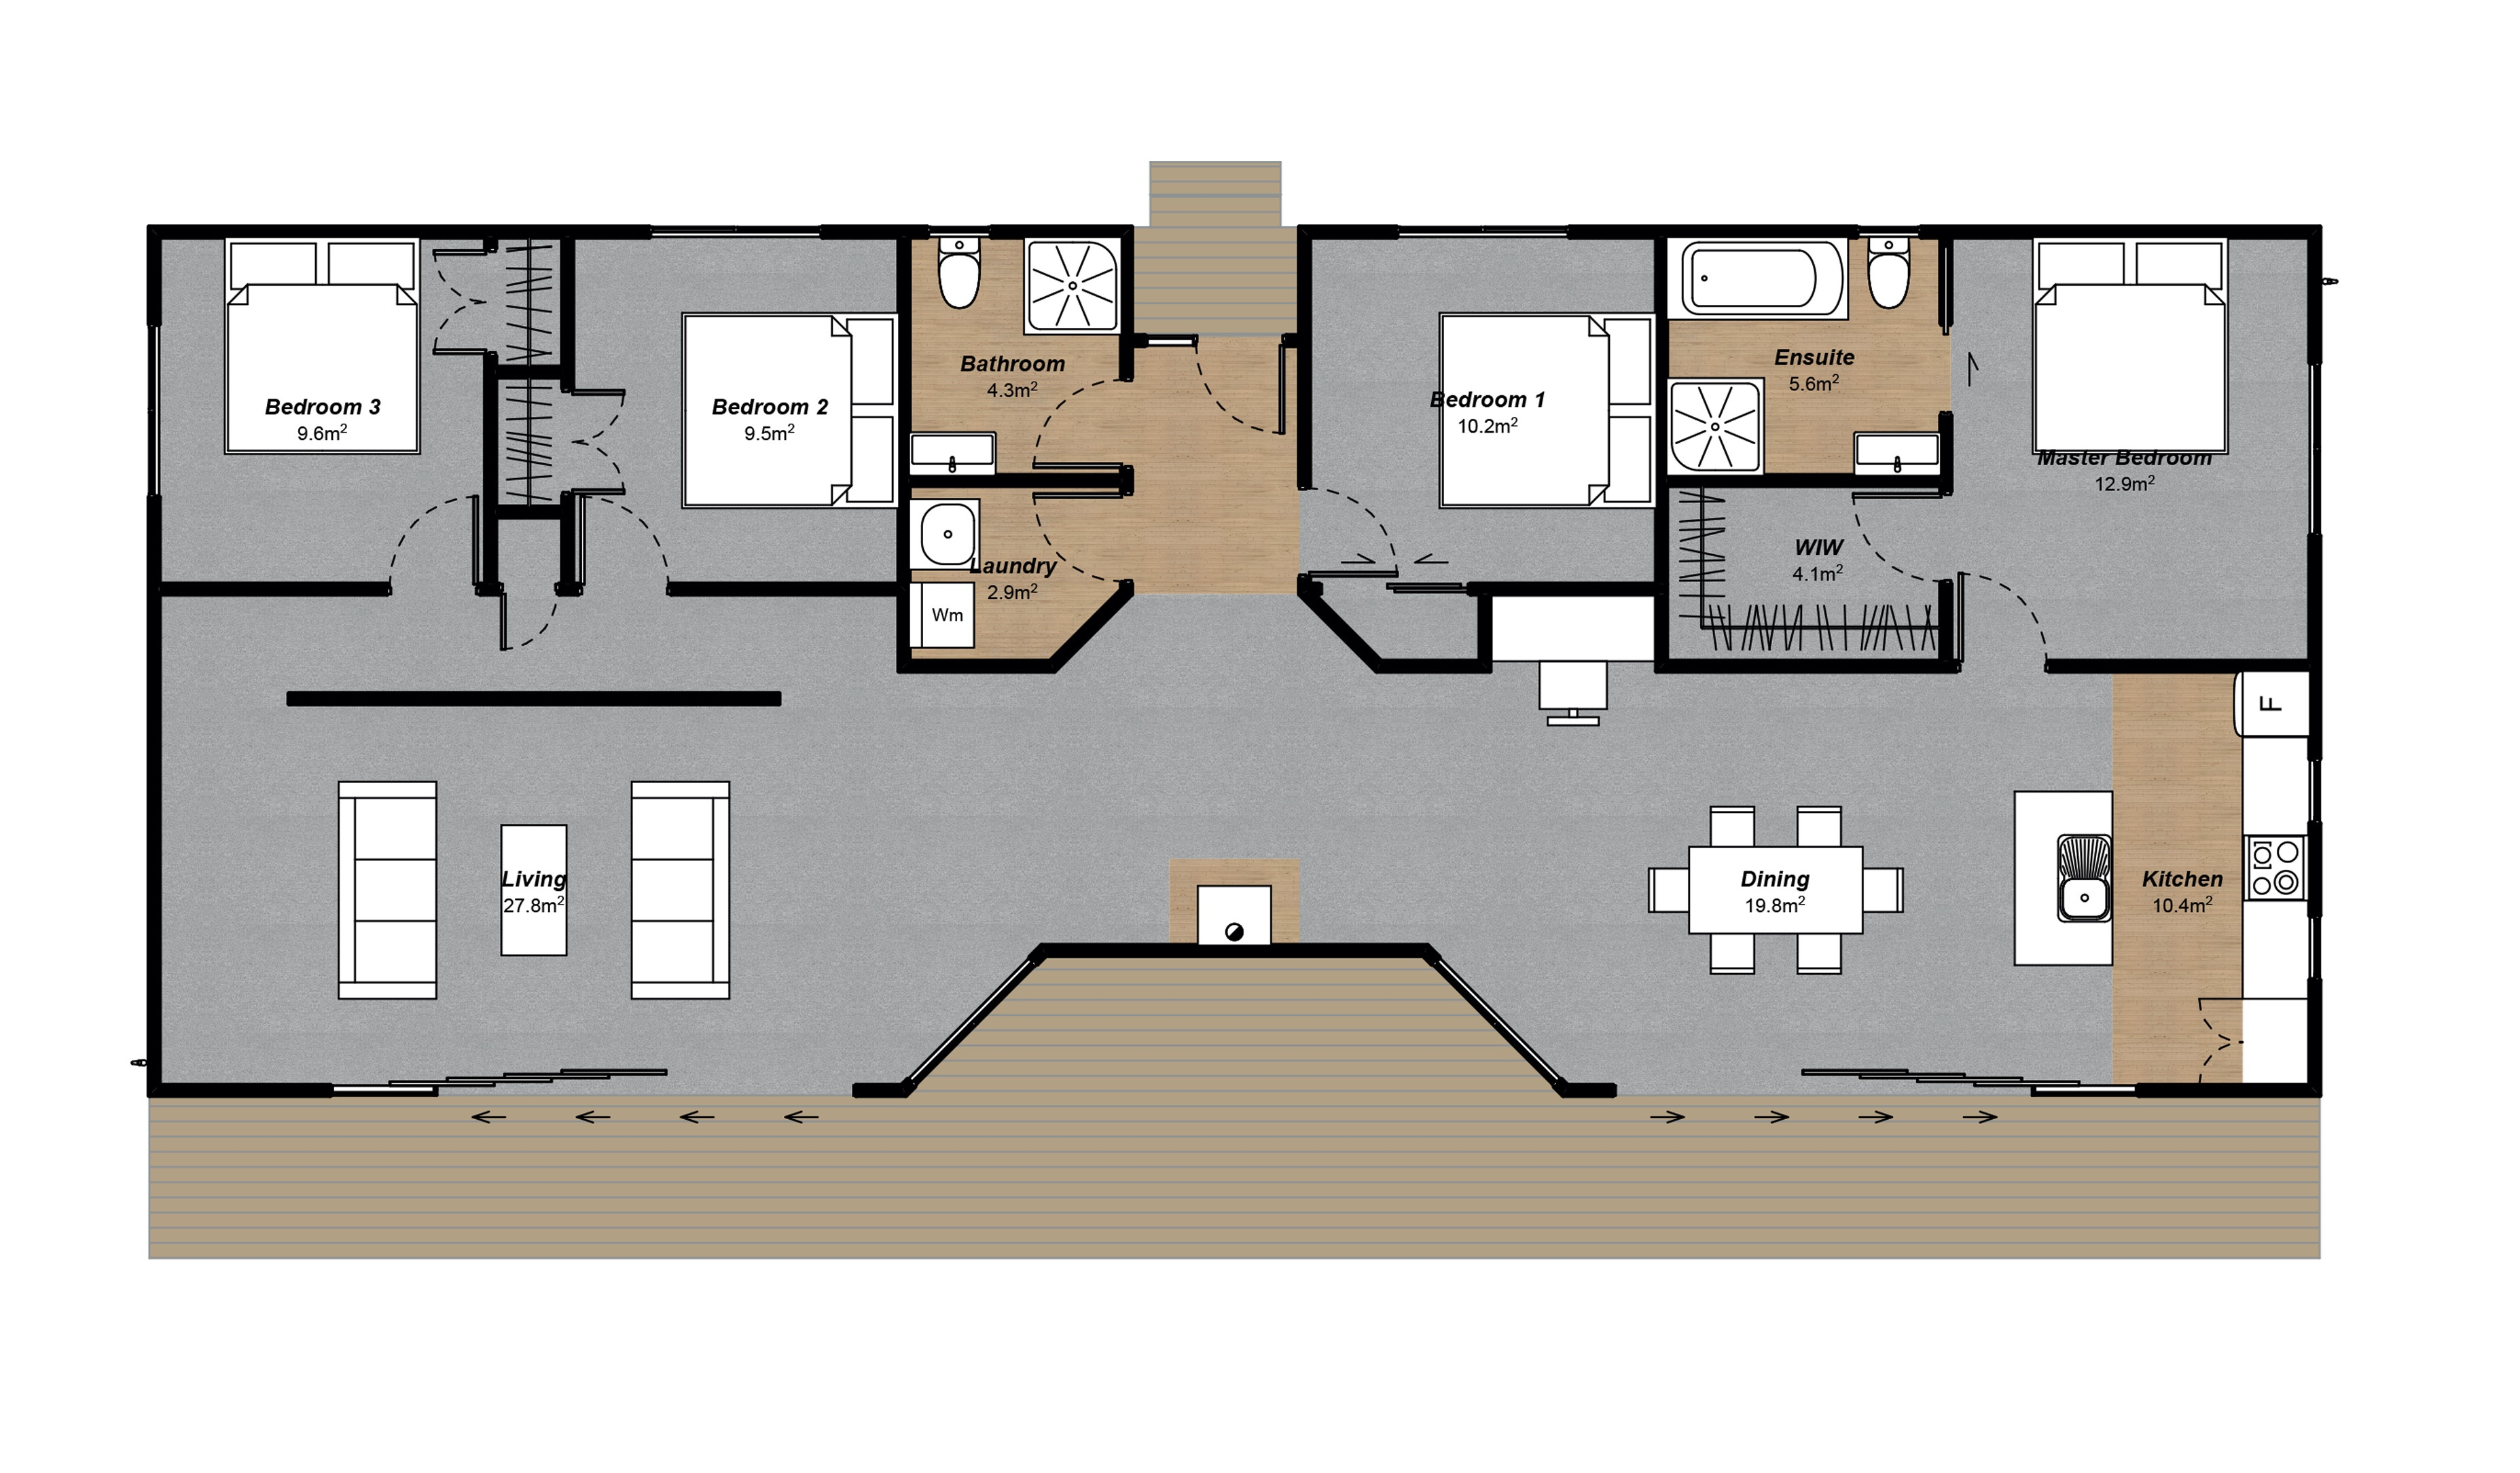 4 Bedroom House Floor Plan